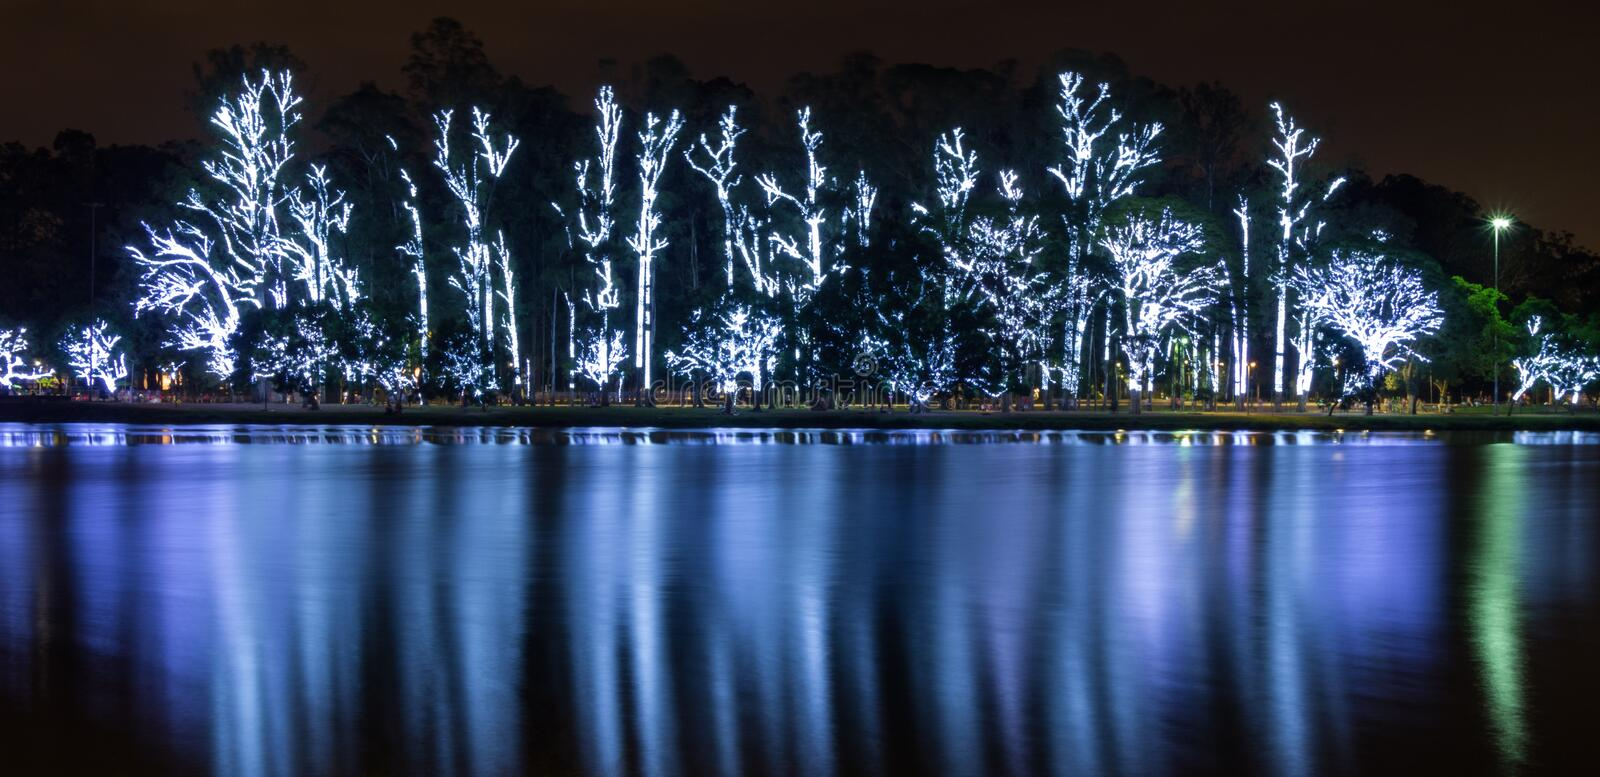 Illuminated trees for christmas. At the famous park of sao paulo city - ibirapuera - and its lake